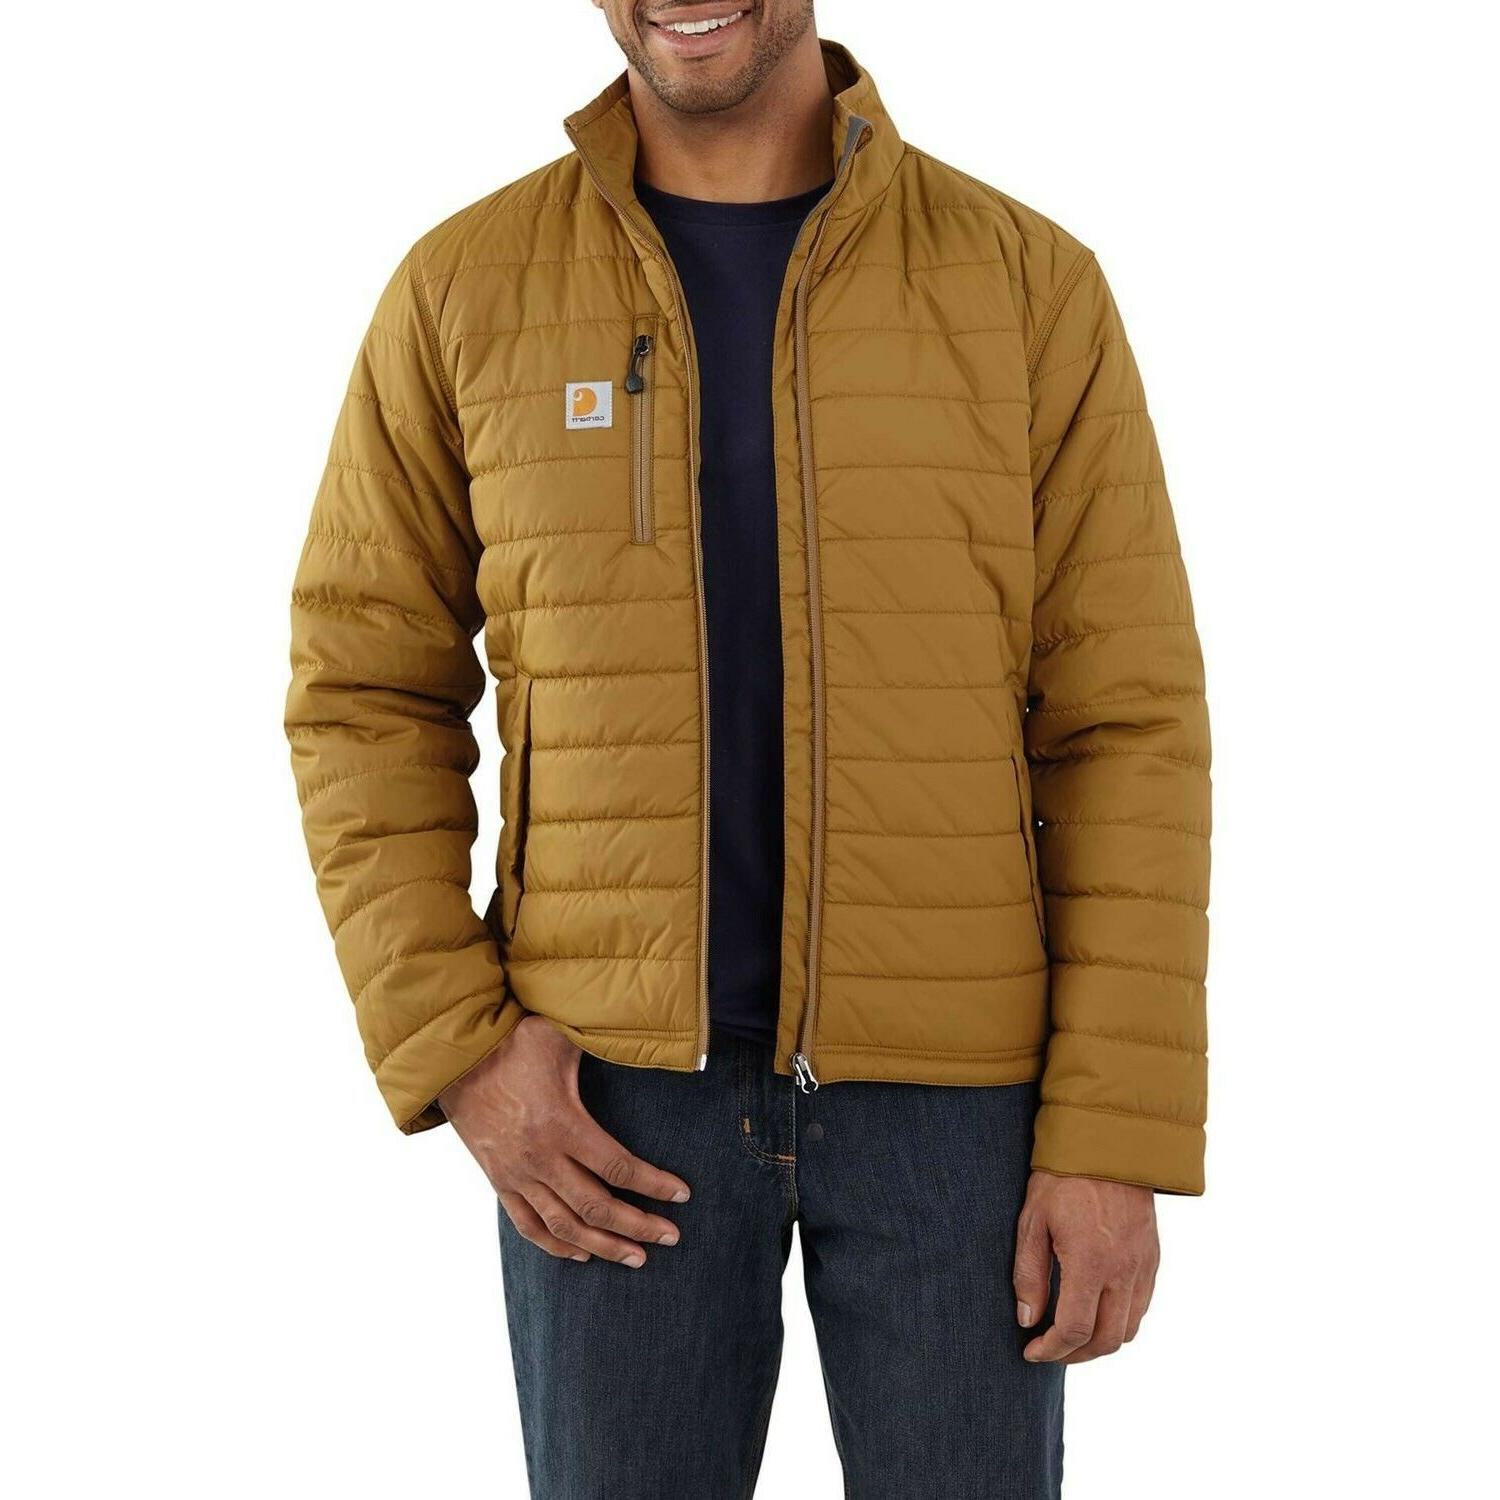 Carhartt Gilliam Brown, Insulated